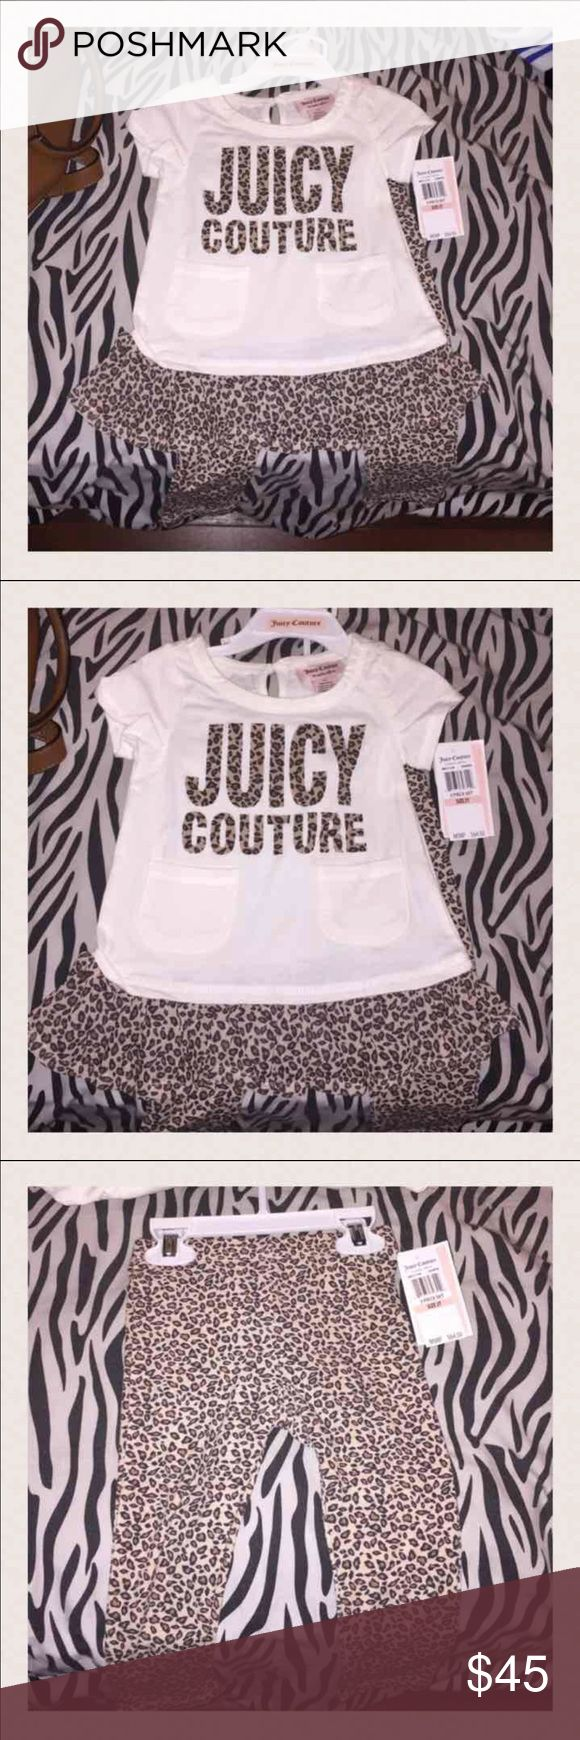 Juicy couture toddler outfit Brand new with tags juicy couture toddler cheetah outfit size 2T Juicy Couture Matching Sets